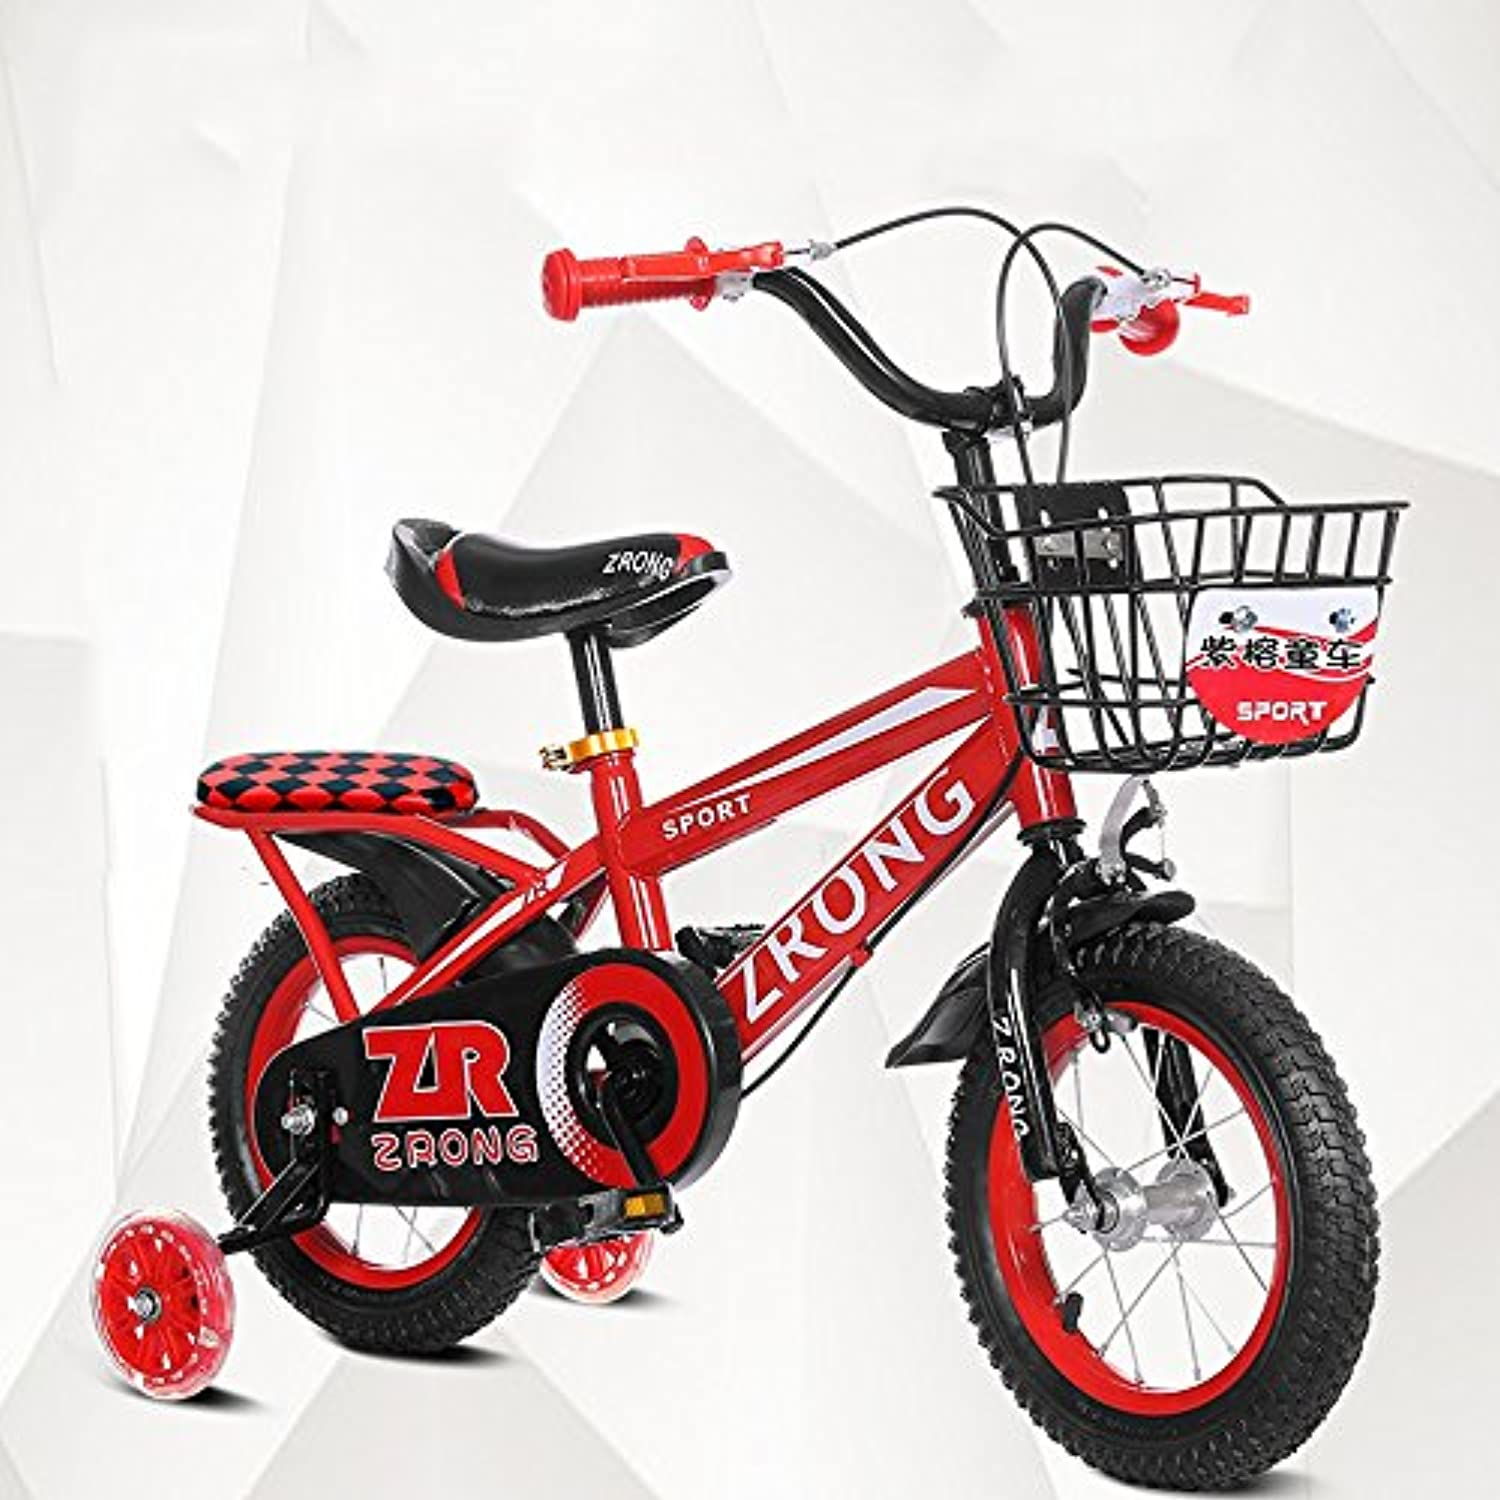 ZHIRONG Kinderfahrrad Blaues, Rotes Gelb Gren  12 Zoll, 14 Zoll, 16 Zoll, 18 Zoll Outdoor-Ausflug ( Farbe   Rot , gre   12 inch )